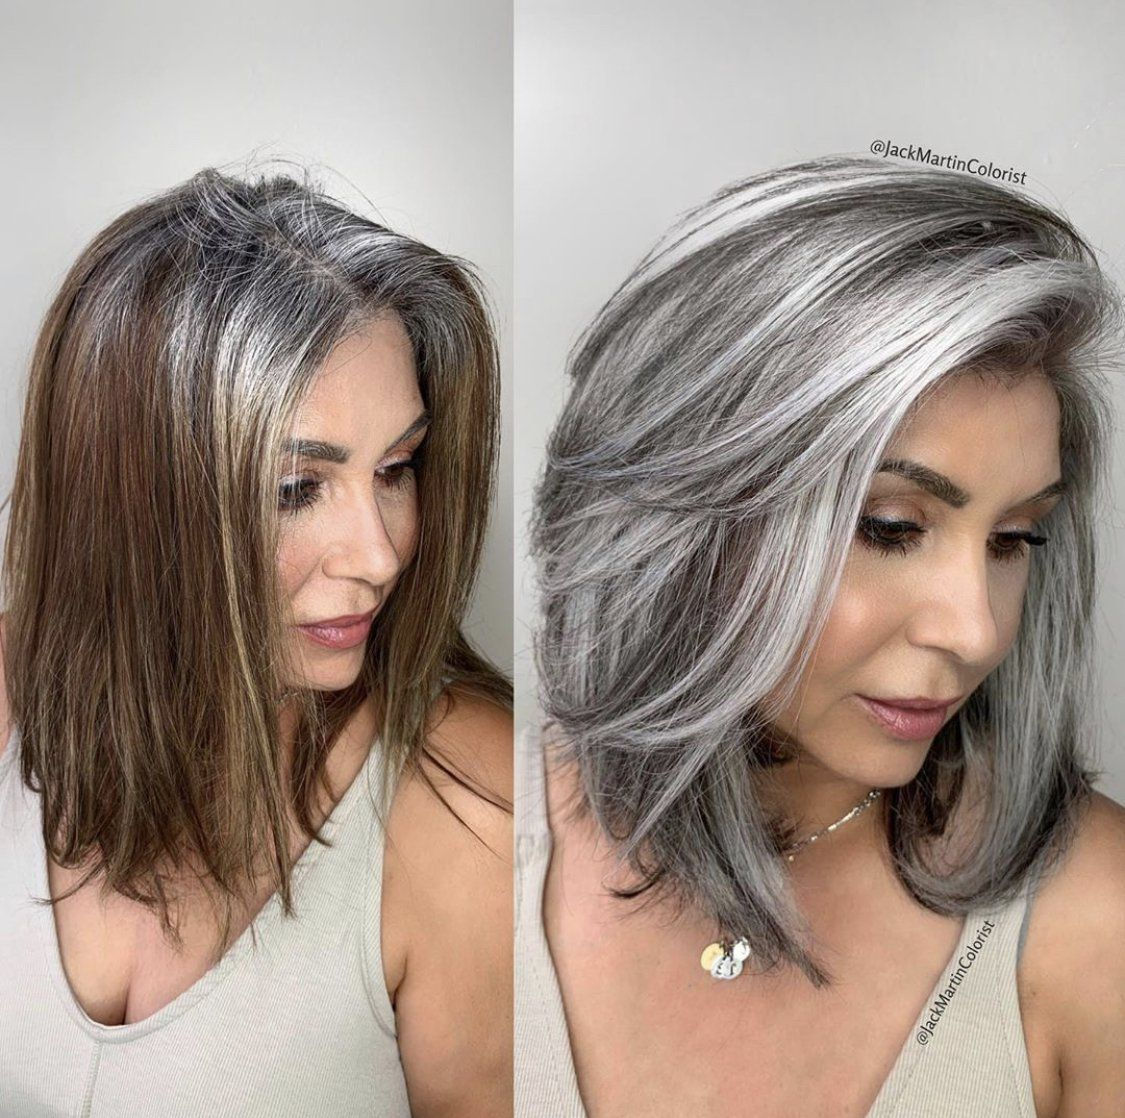 Coloring hair stop gray Going Gray: